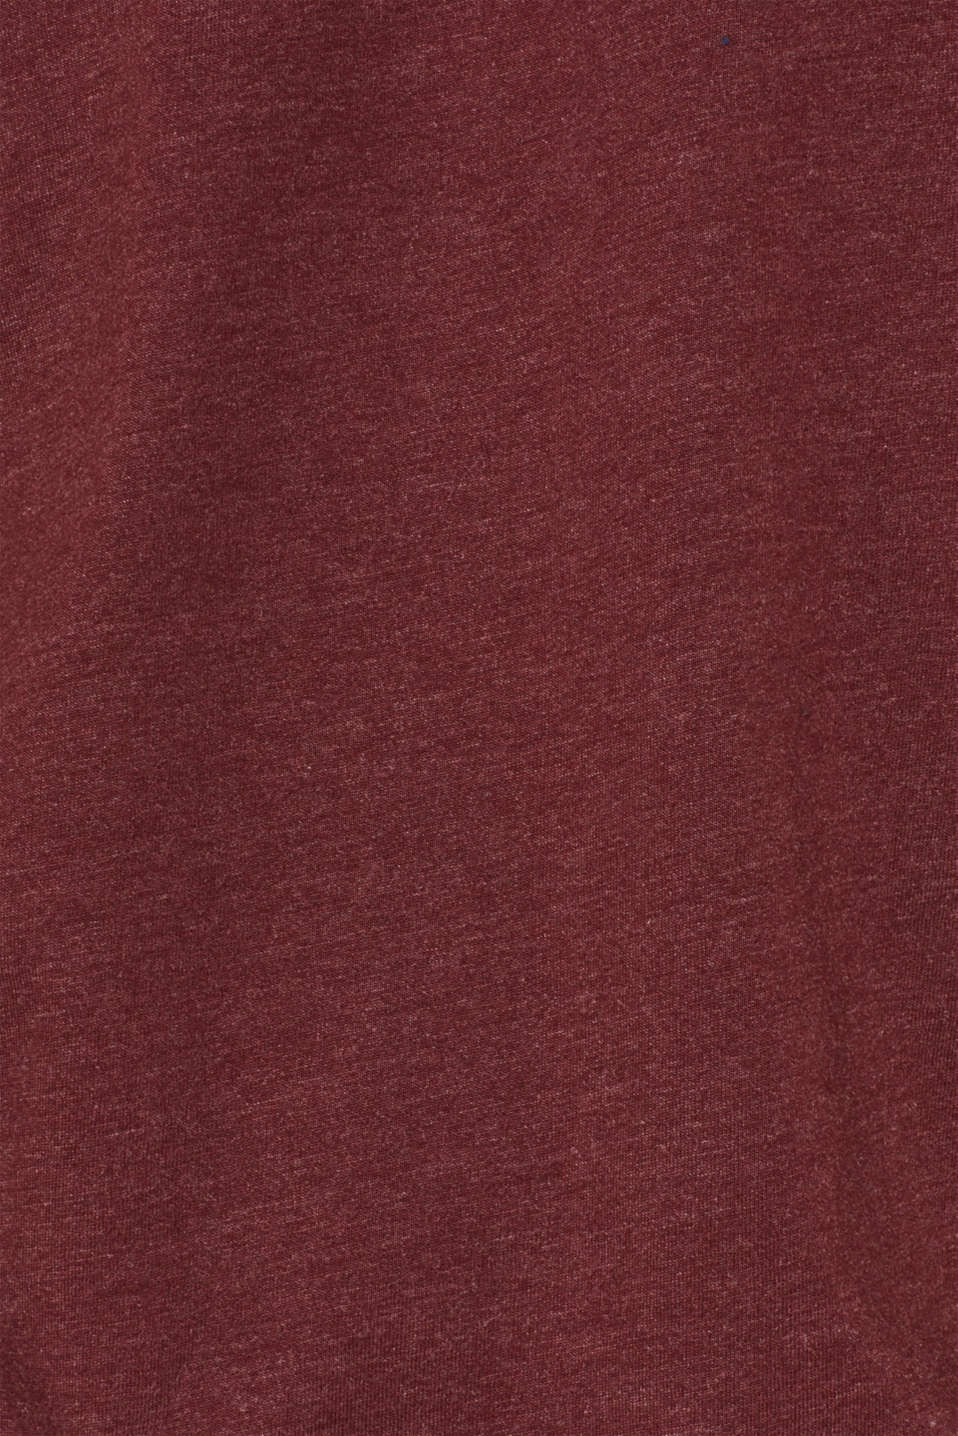 Jersey T-shirt with logo, made of blended cotton, BLUSH, detail image number 4